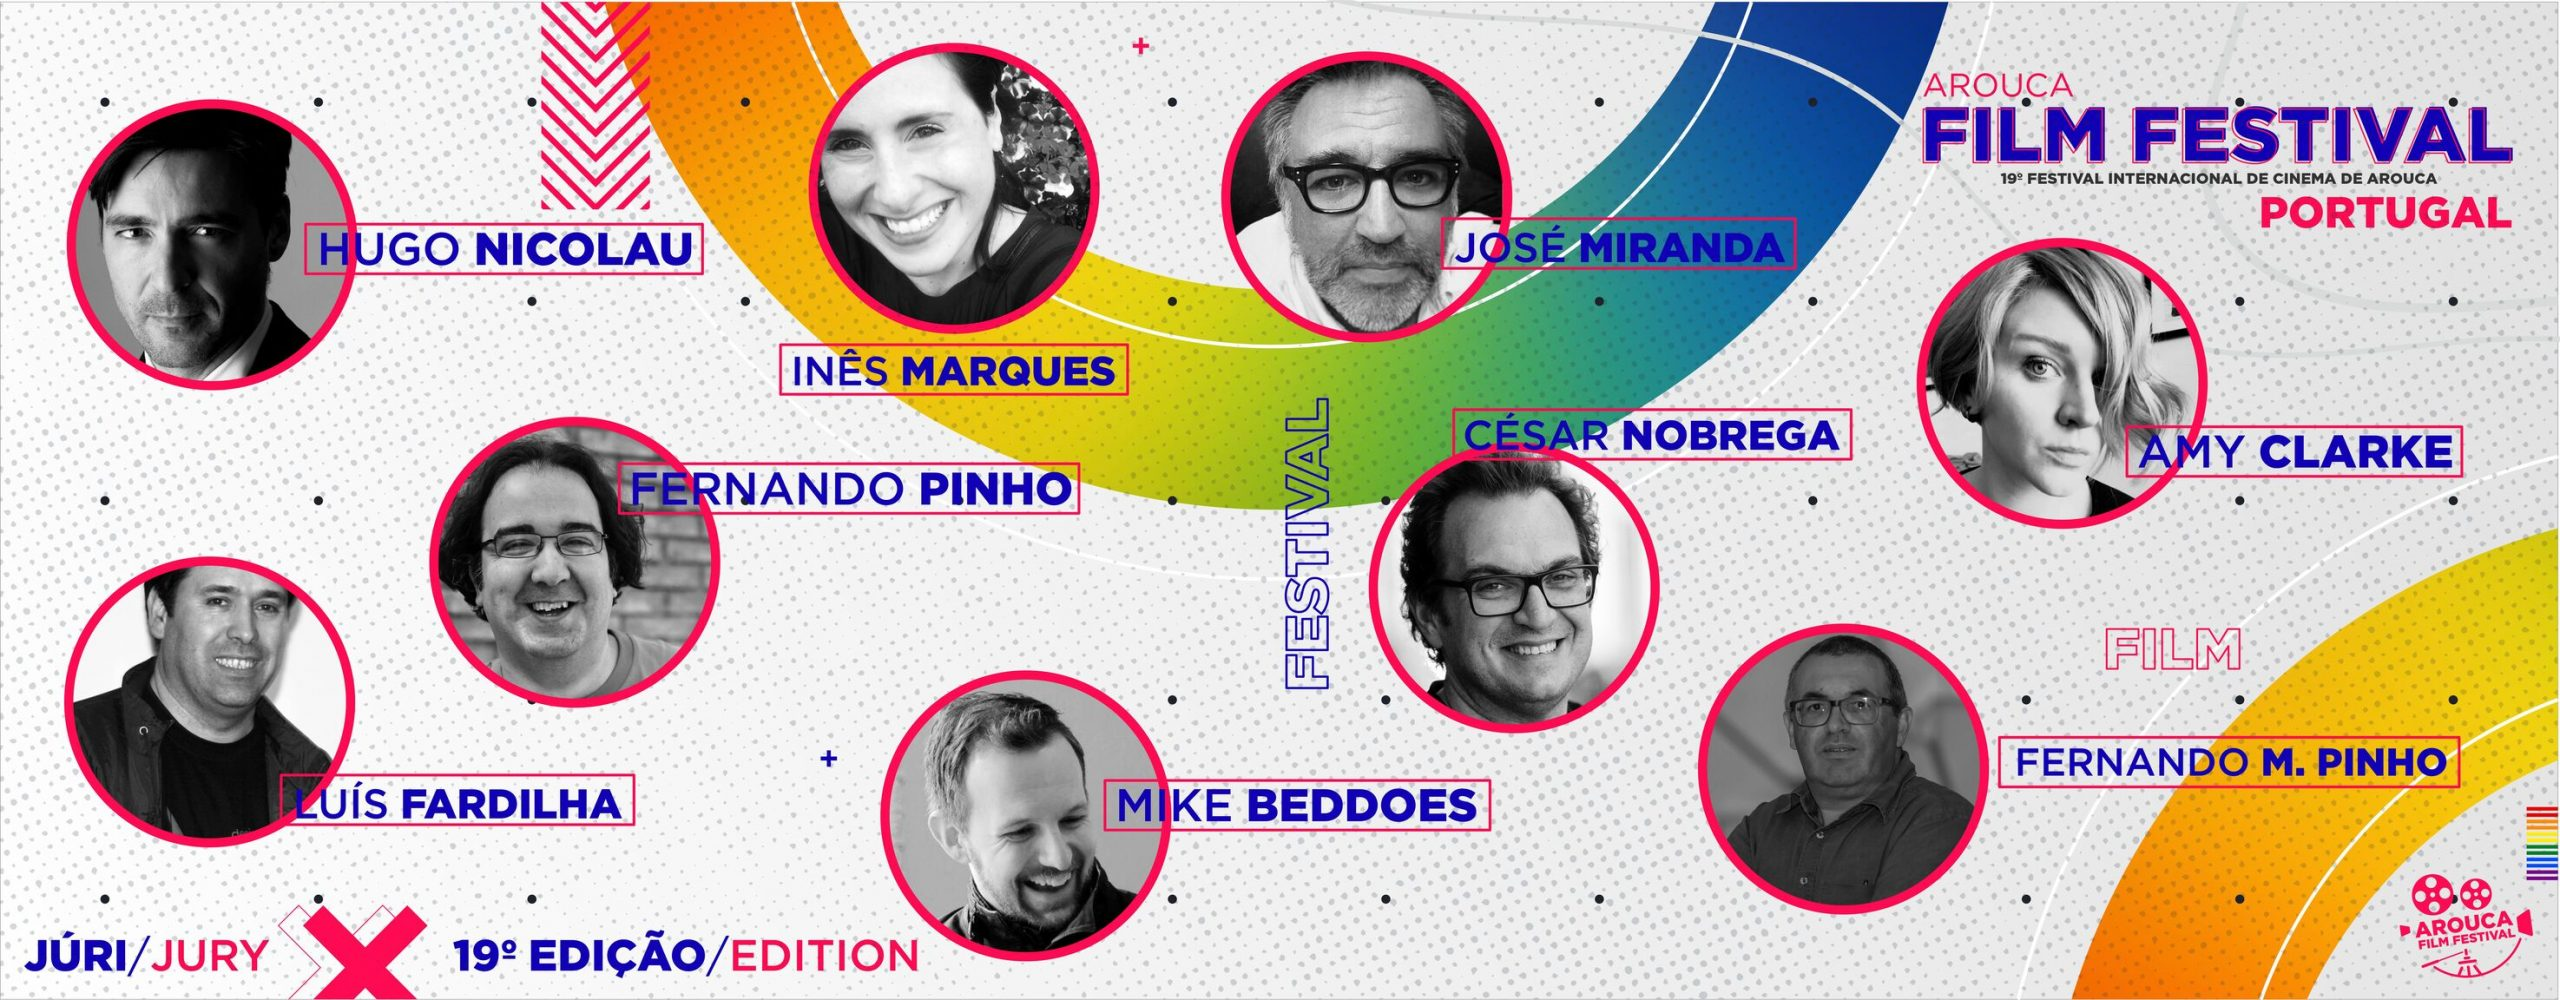 Jury of the 2021 edition of the Arouca Film Festival / Portugal